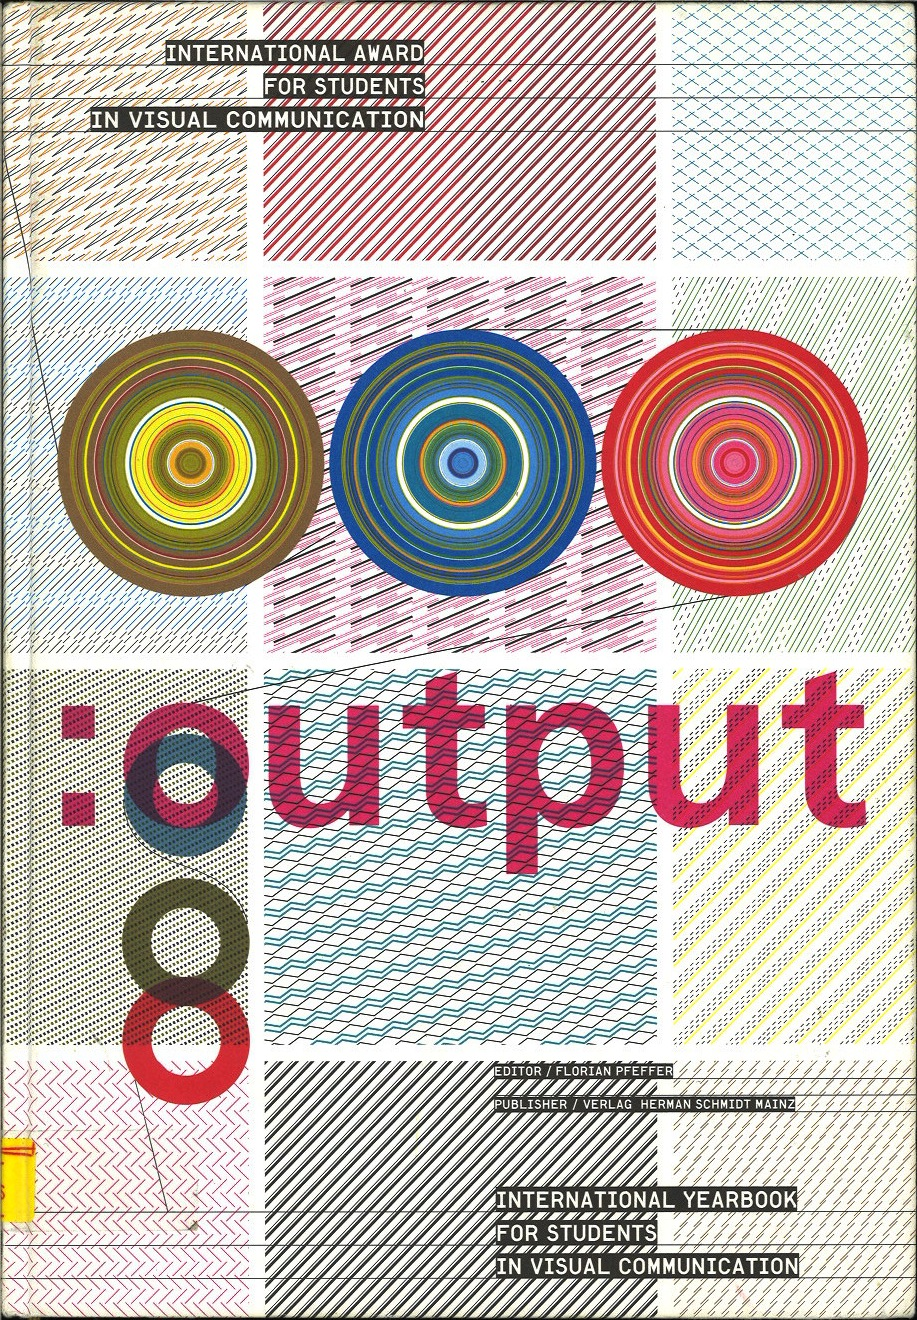 output 08: International Yearbook and Students Award in Visual Communication 2004